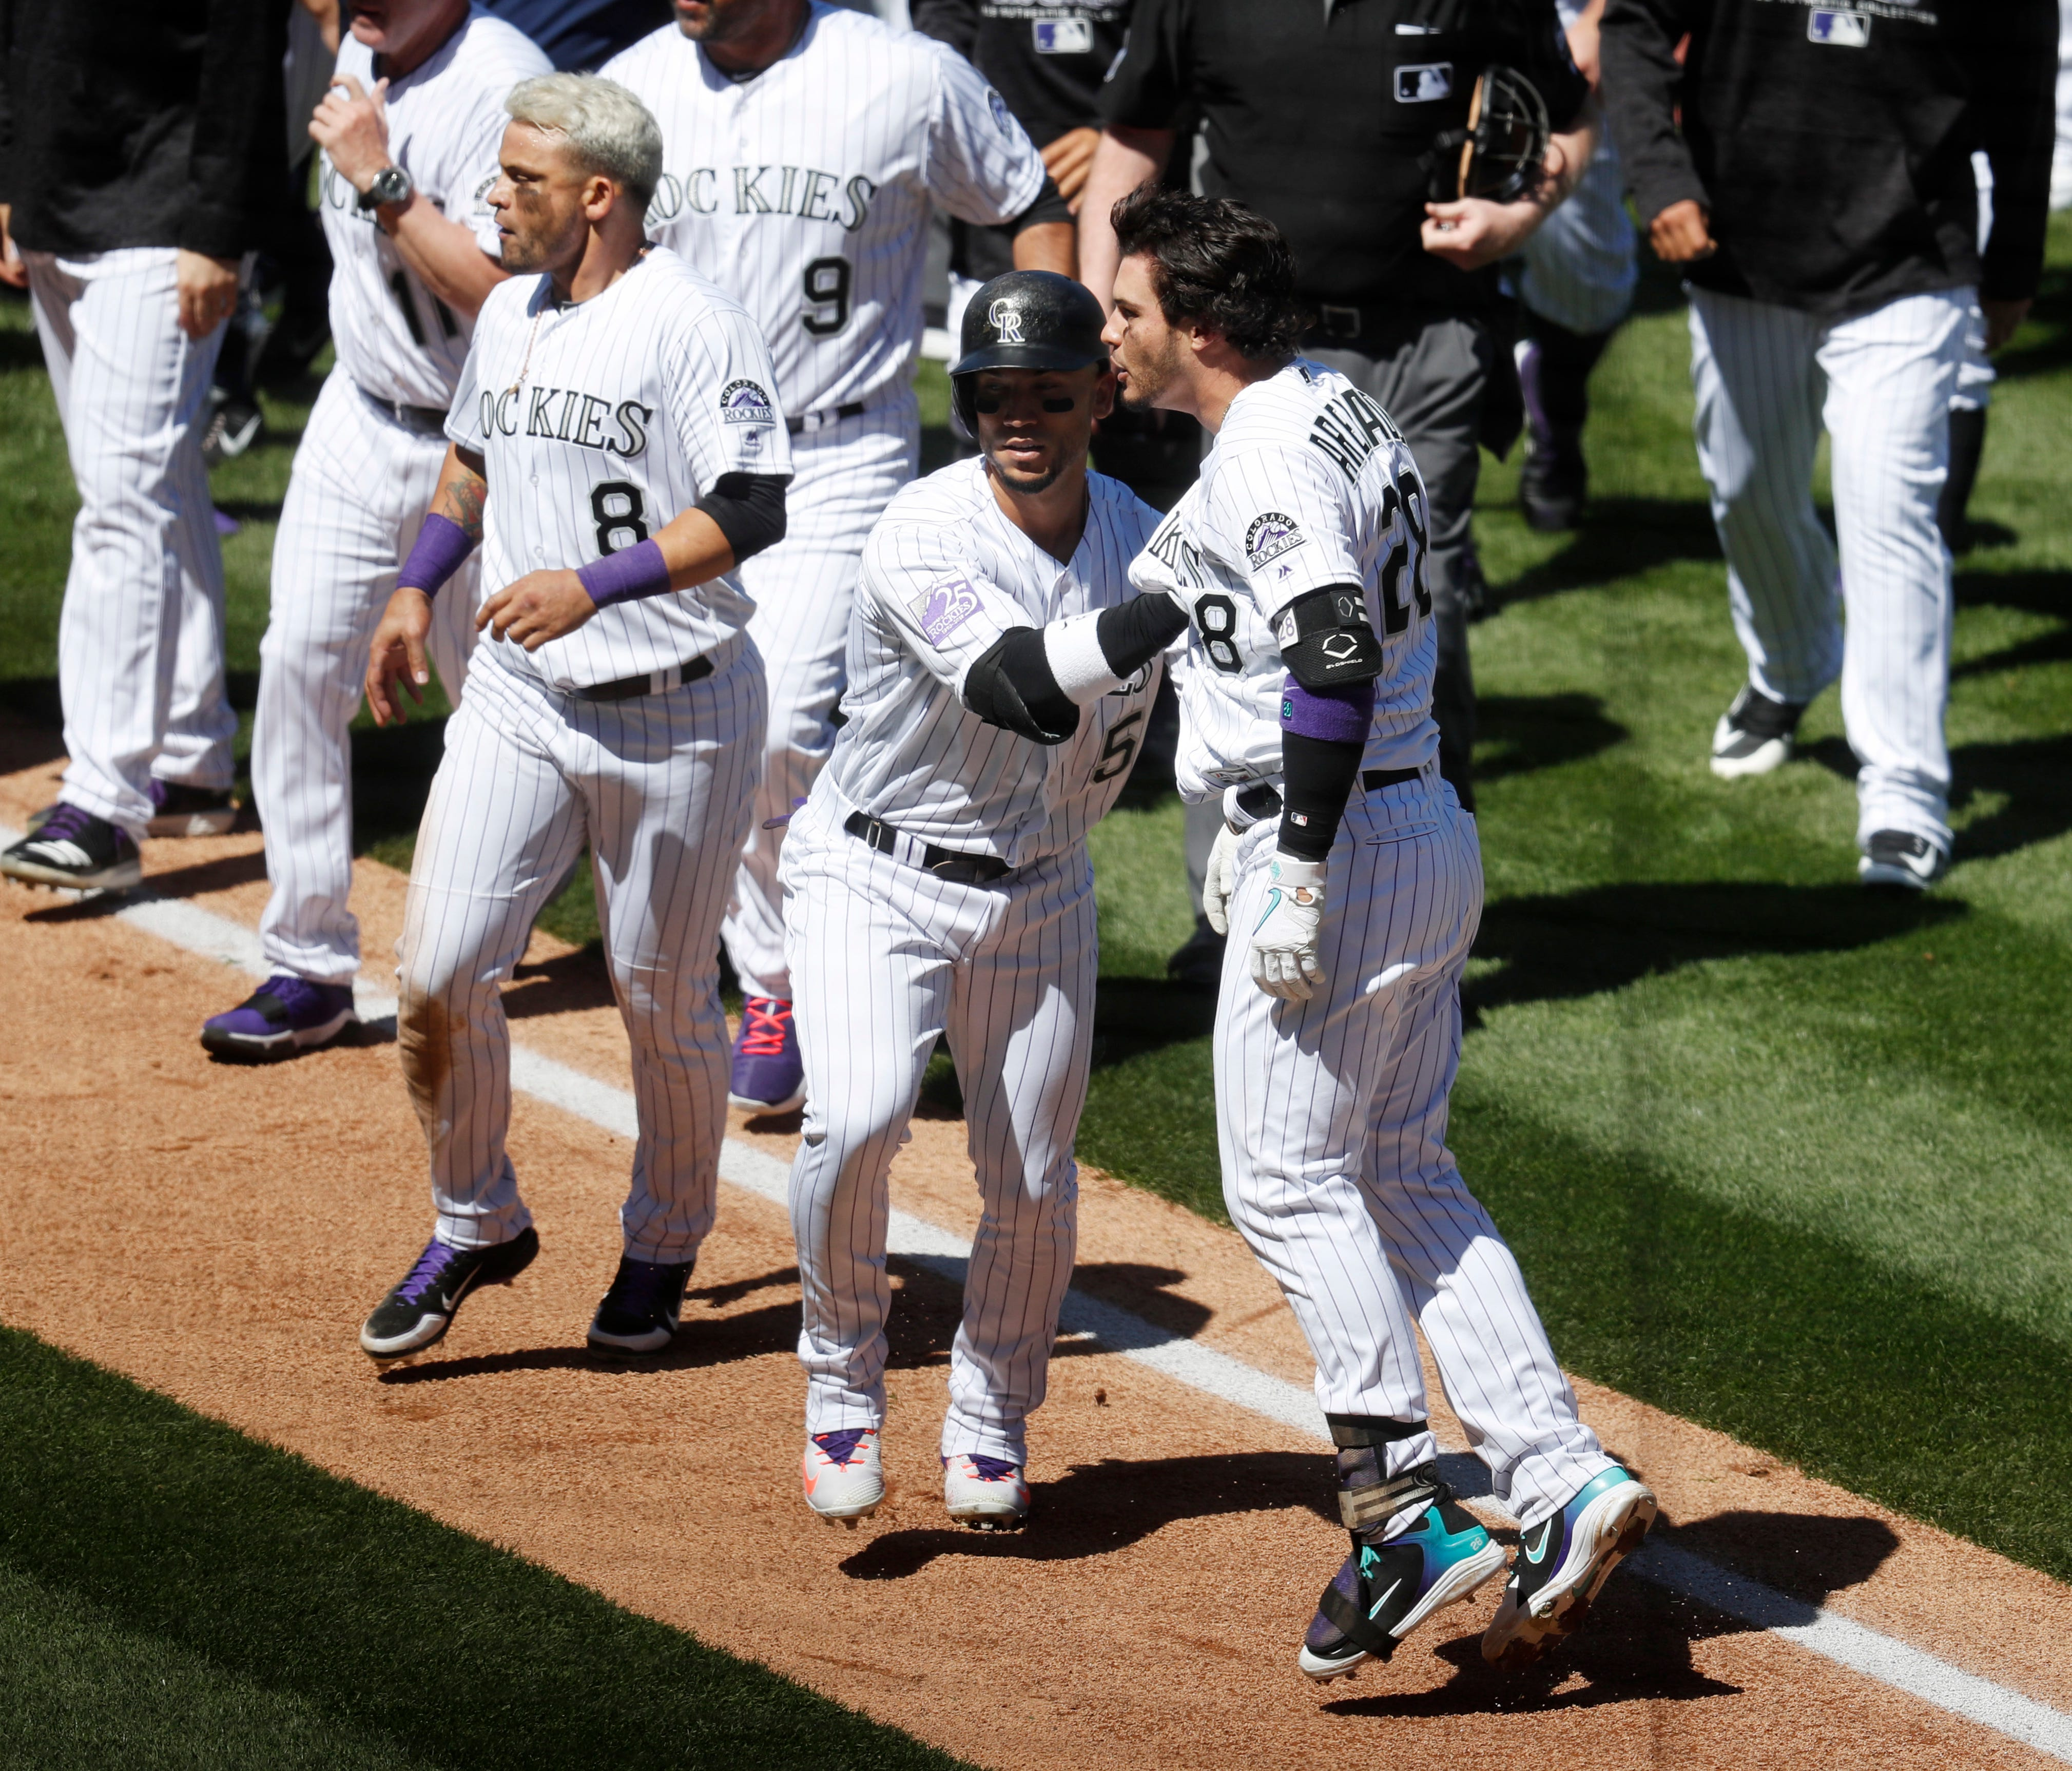 Rockies' Nolan Arenado, front right, is restrained by Carlos Gonzalez.